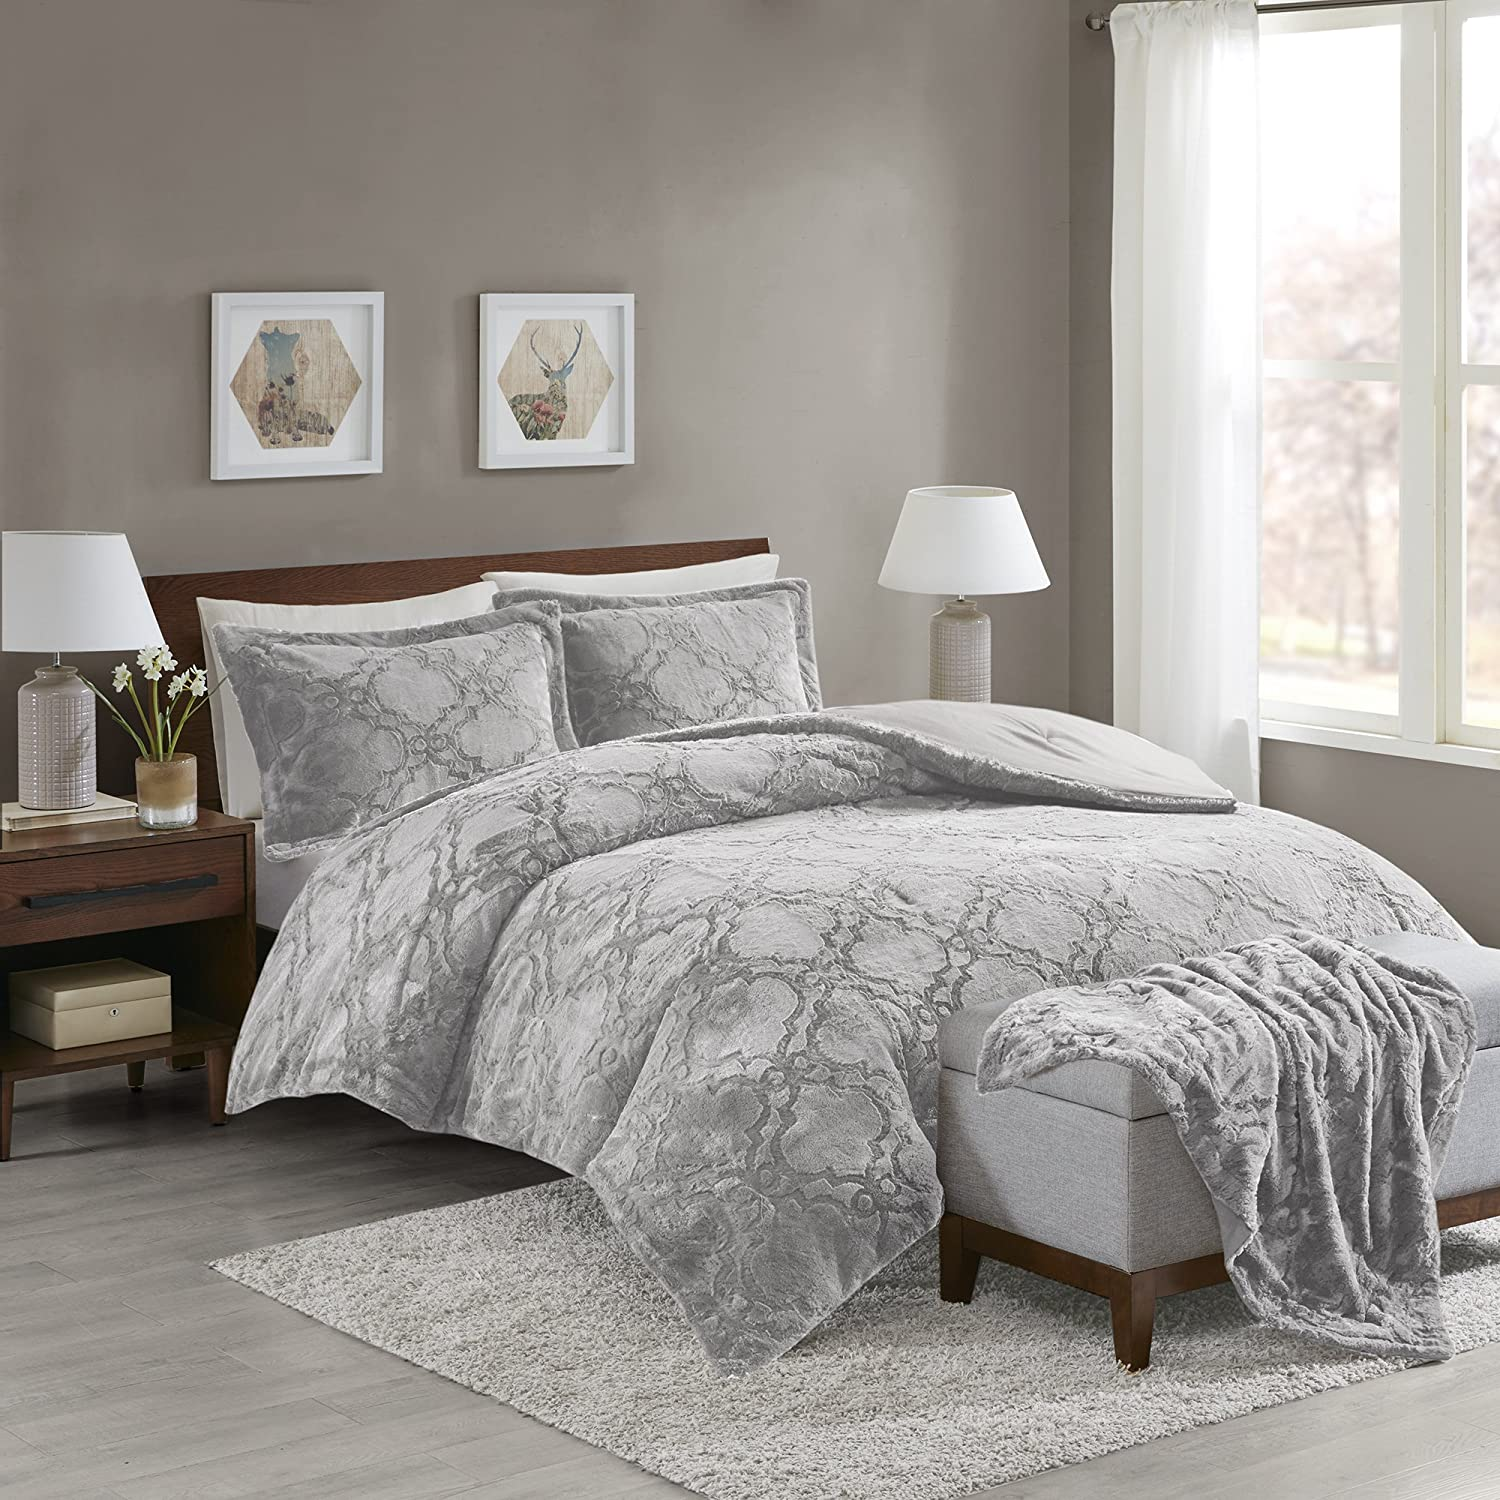 Comfort Spaces Odessa Long Fur Set + Cozy Combo-4 Piece-Snugly Warm and Ultra Soft-Includes 1 Comforter, 2 Shams, 1 Throw-Blanket, Full/Queen, Grey